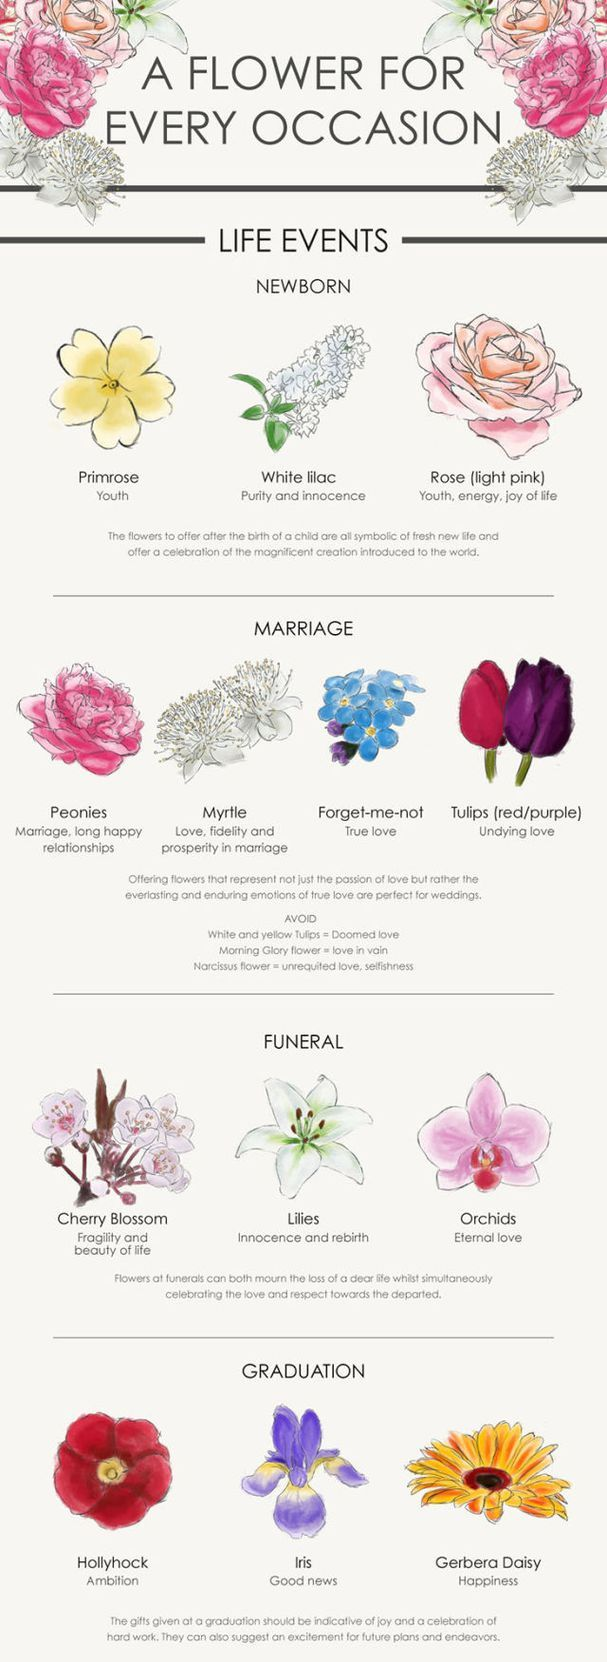 A Flower For Every Occasion Your Complete Guide Flower